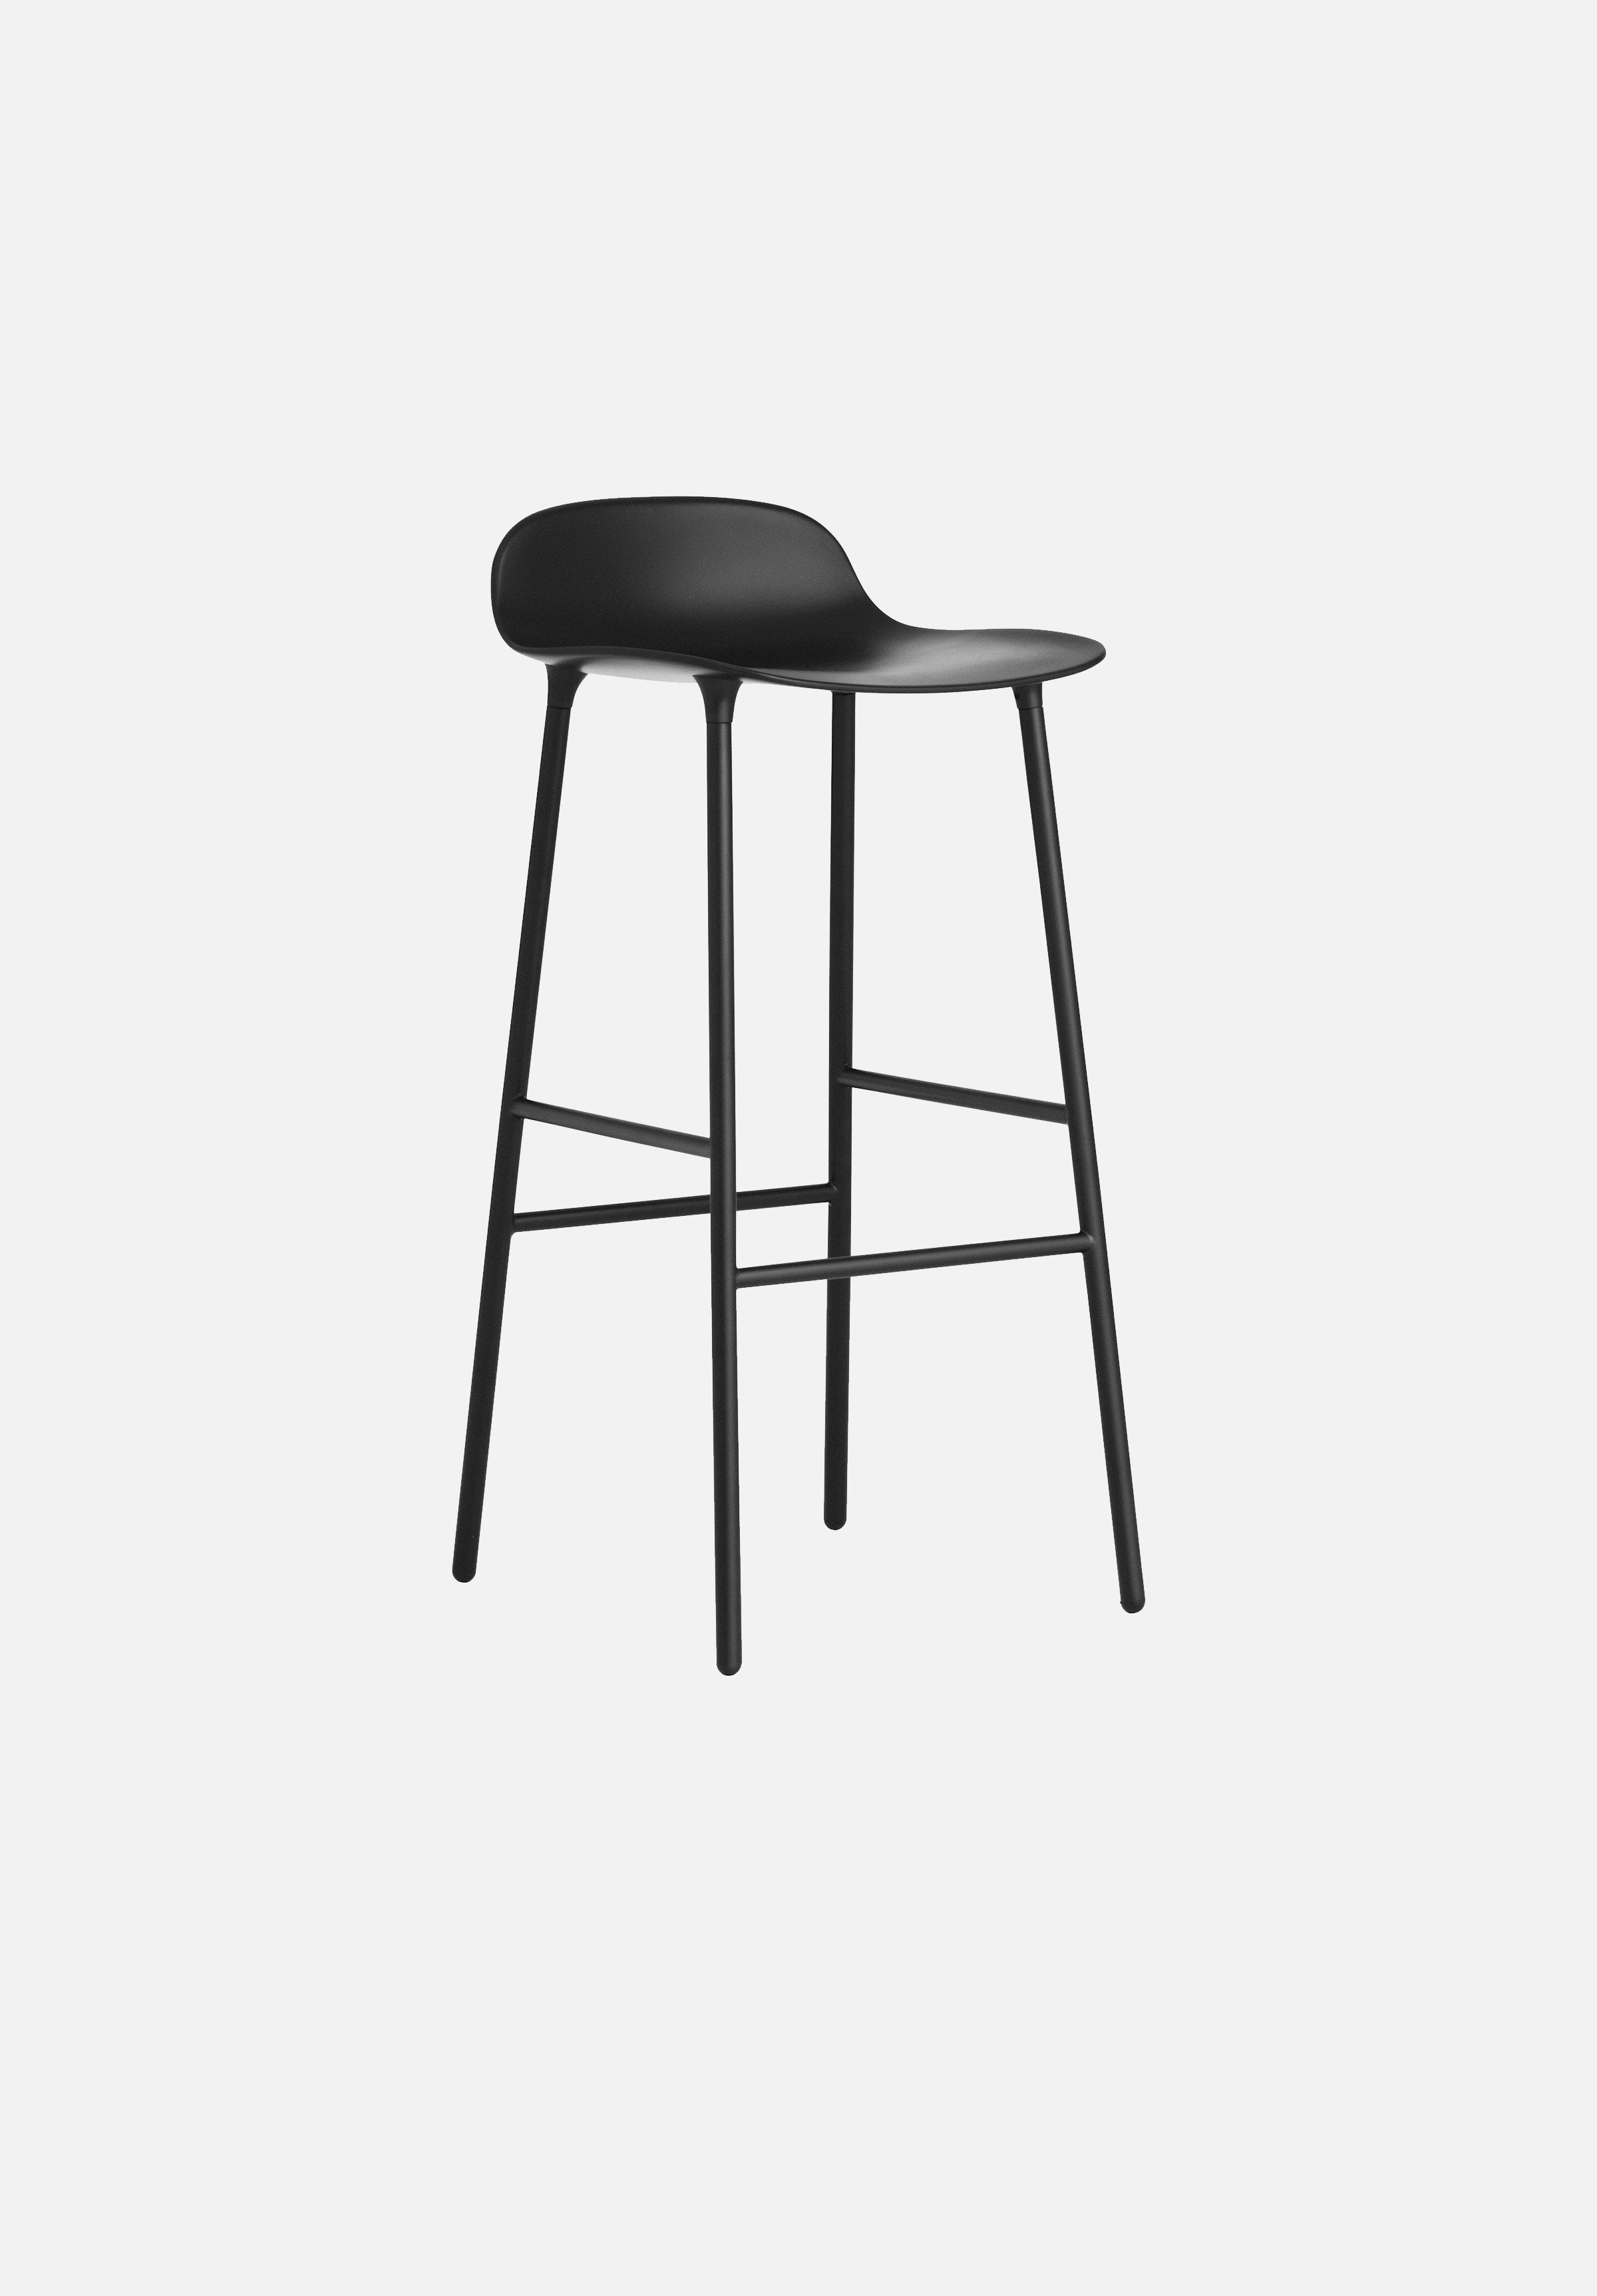 Form Stool — 75cm-Simon Legald-Normann Copenhagen-Black-Lacquered Steel-Average-canada-design-store-danish-denmark-furniture-interior